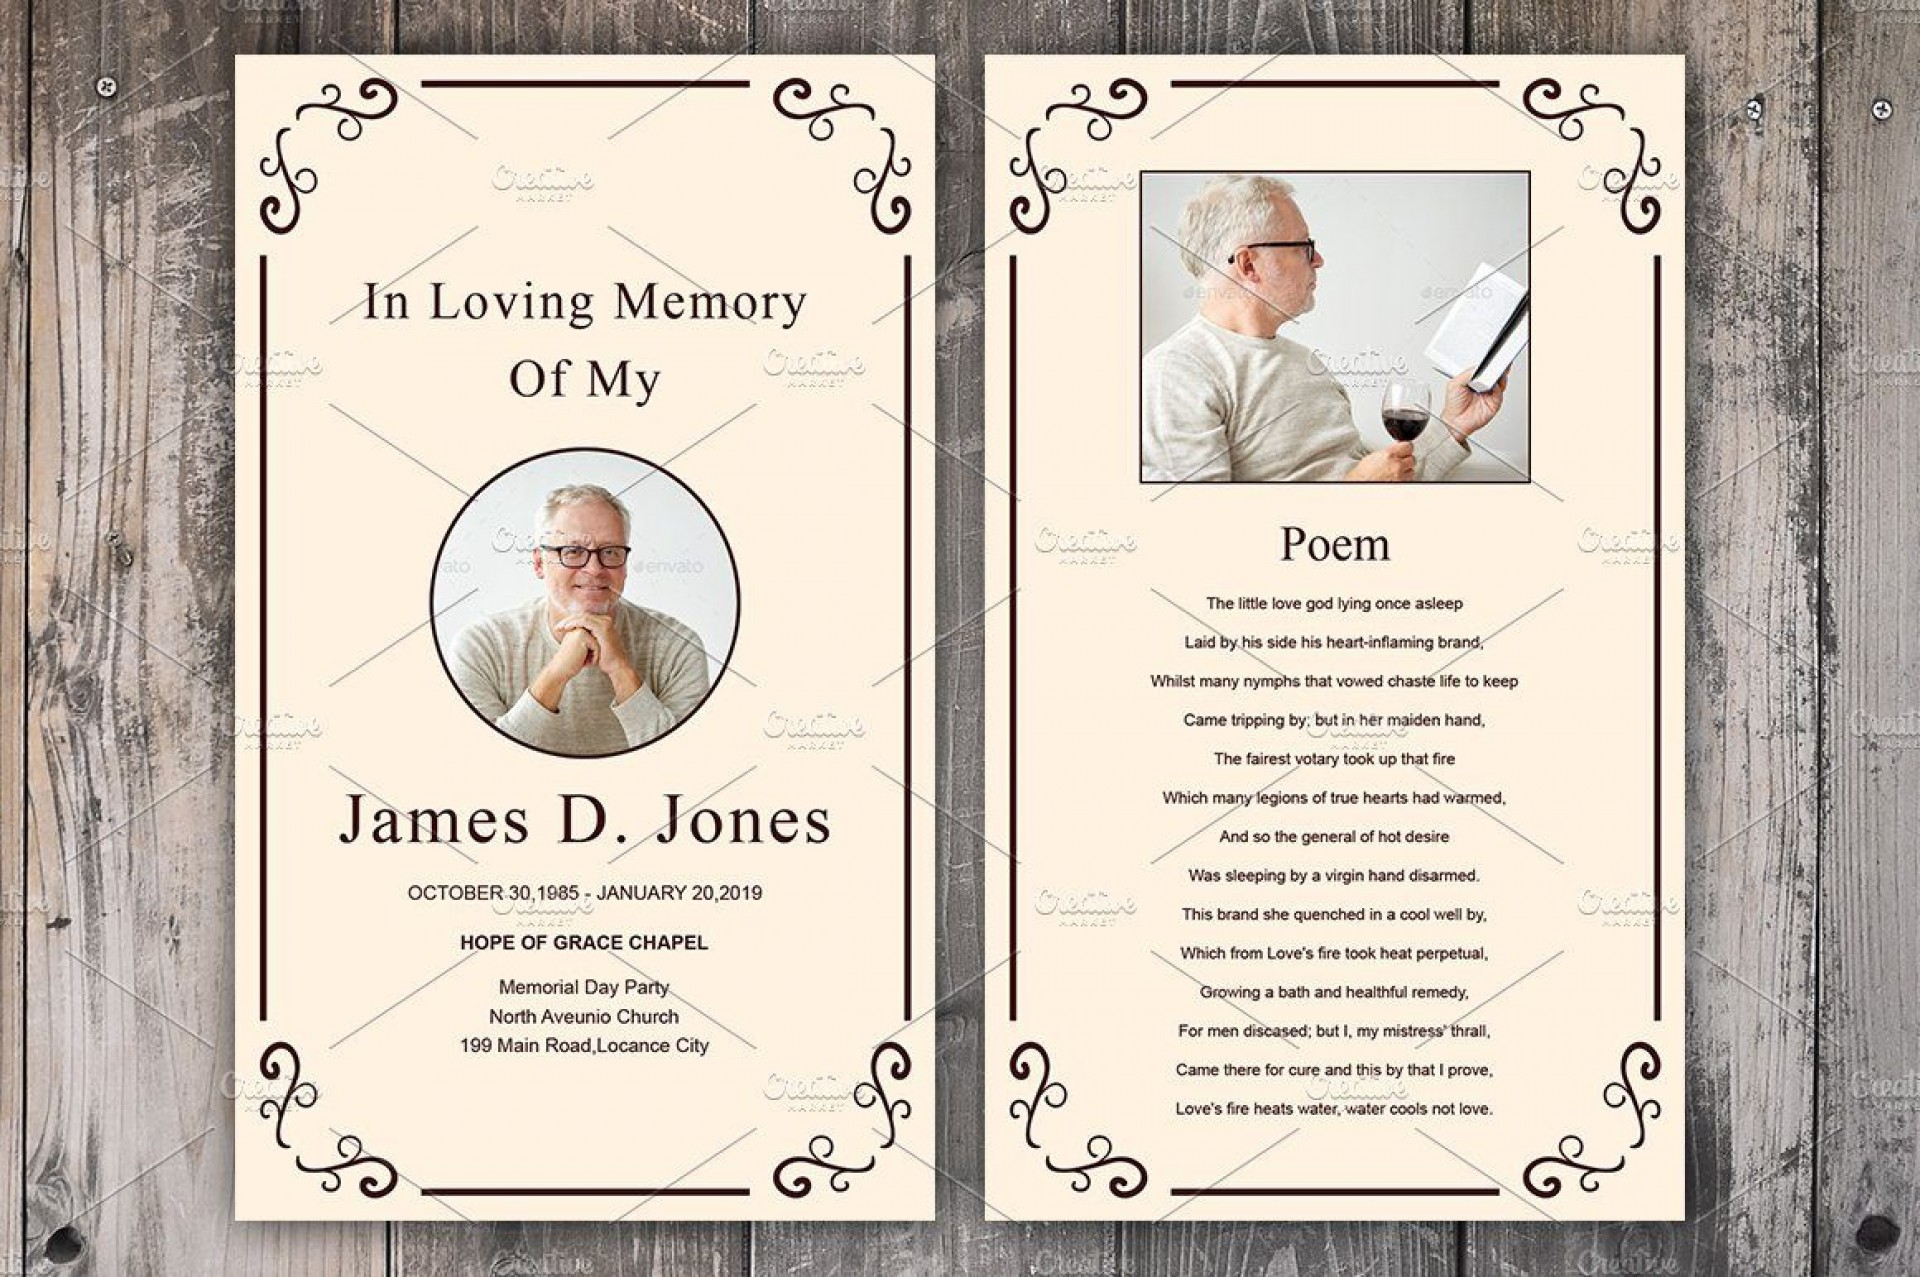 007 Fearsome Funeral Prayer Card Template Design  Templates For Word Free1920